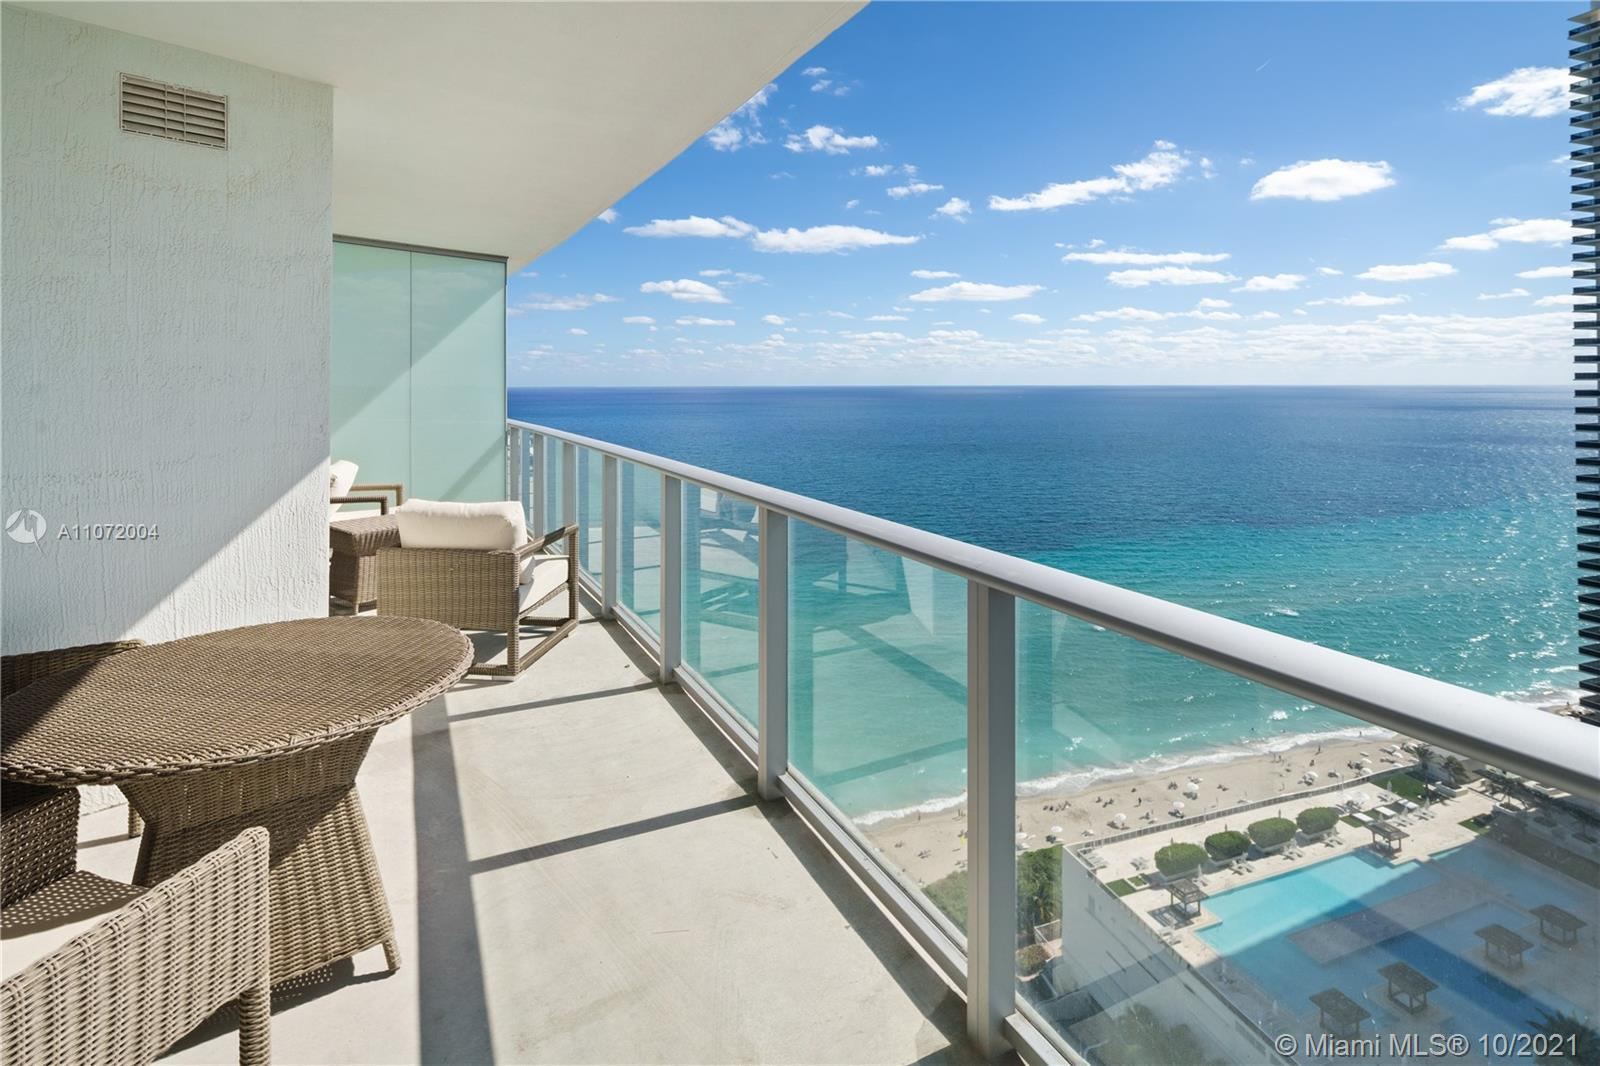 STELLAR balcony with amazing ocean AND Intracoastal view. Top-of-the-line appliances and finishes. T